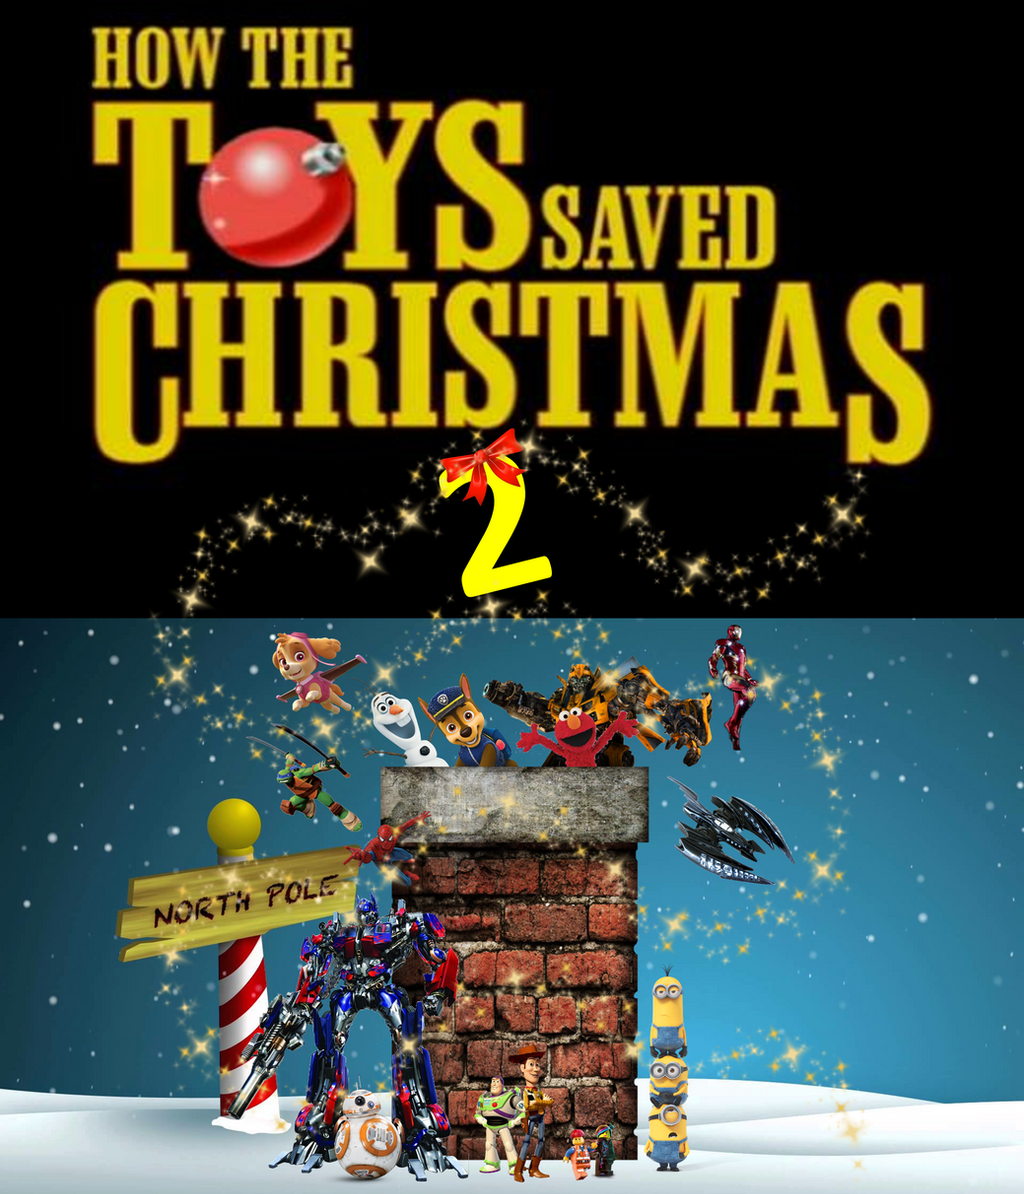 how the toys saved christmas 2 by nightmarebear87 - The Toy That Saved Christmas